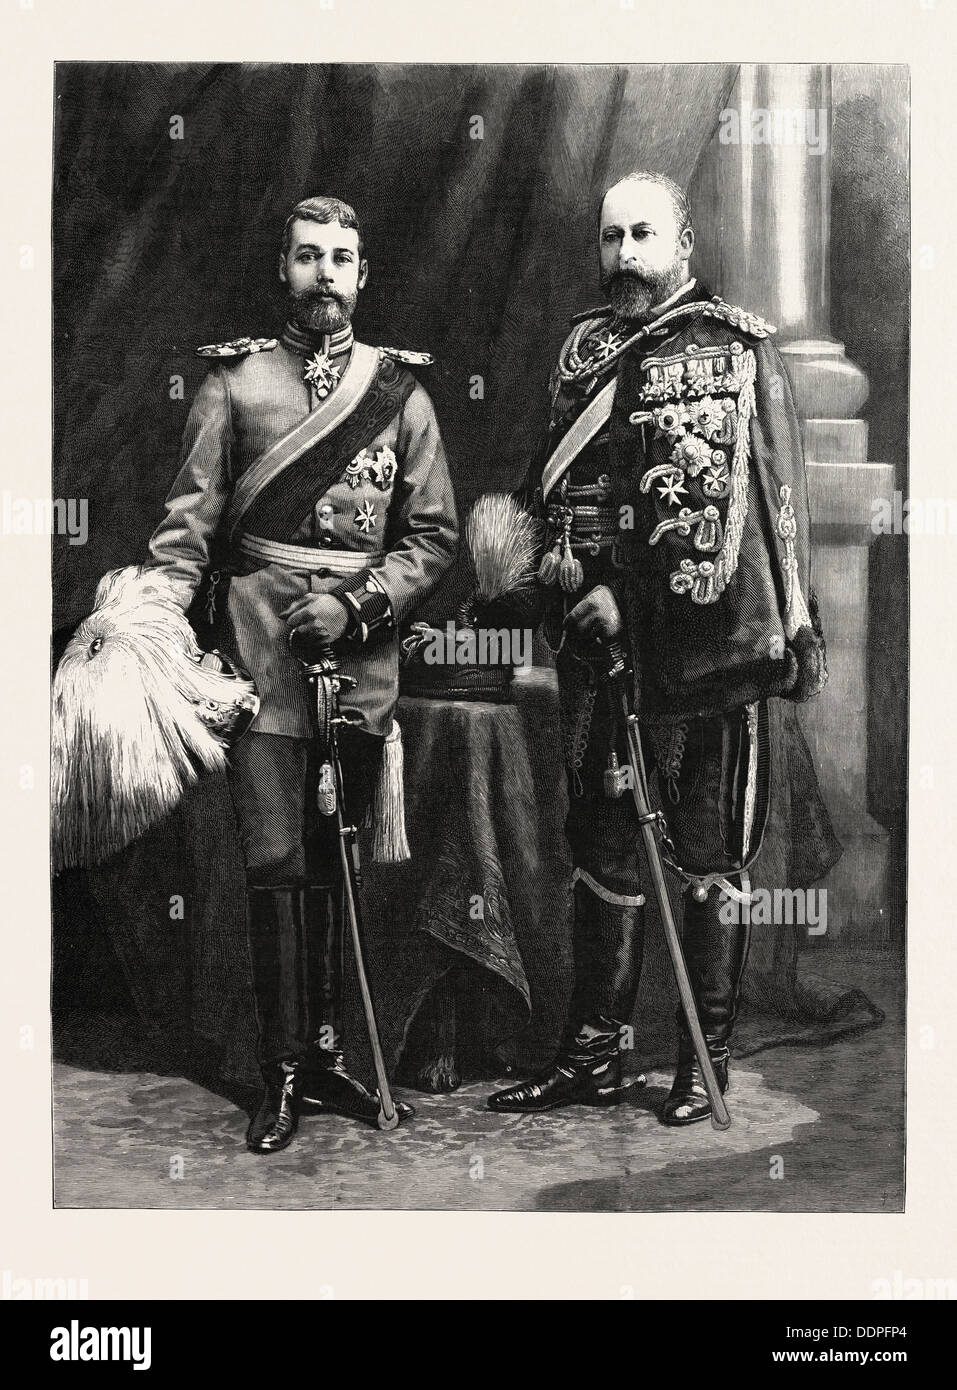 THE PRINCE OF WALES AND PRINCE GEORGE OF WALES IN THE GERMAN UNIFORMS PRESENTED TO THEM BY THE EMPEROR WILLIAM - Stock Image